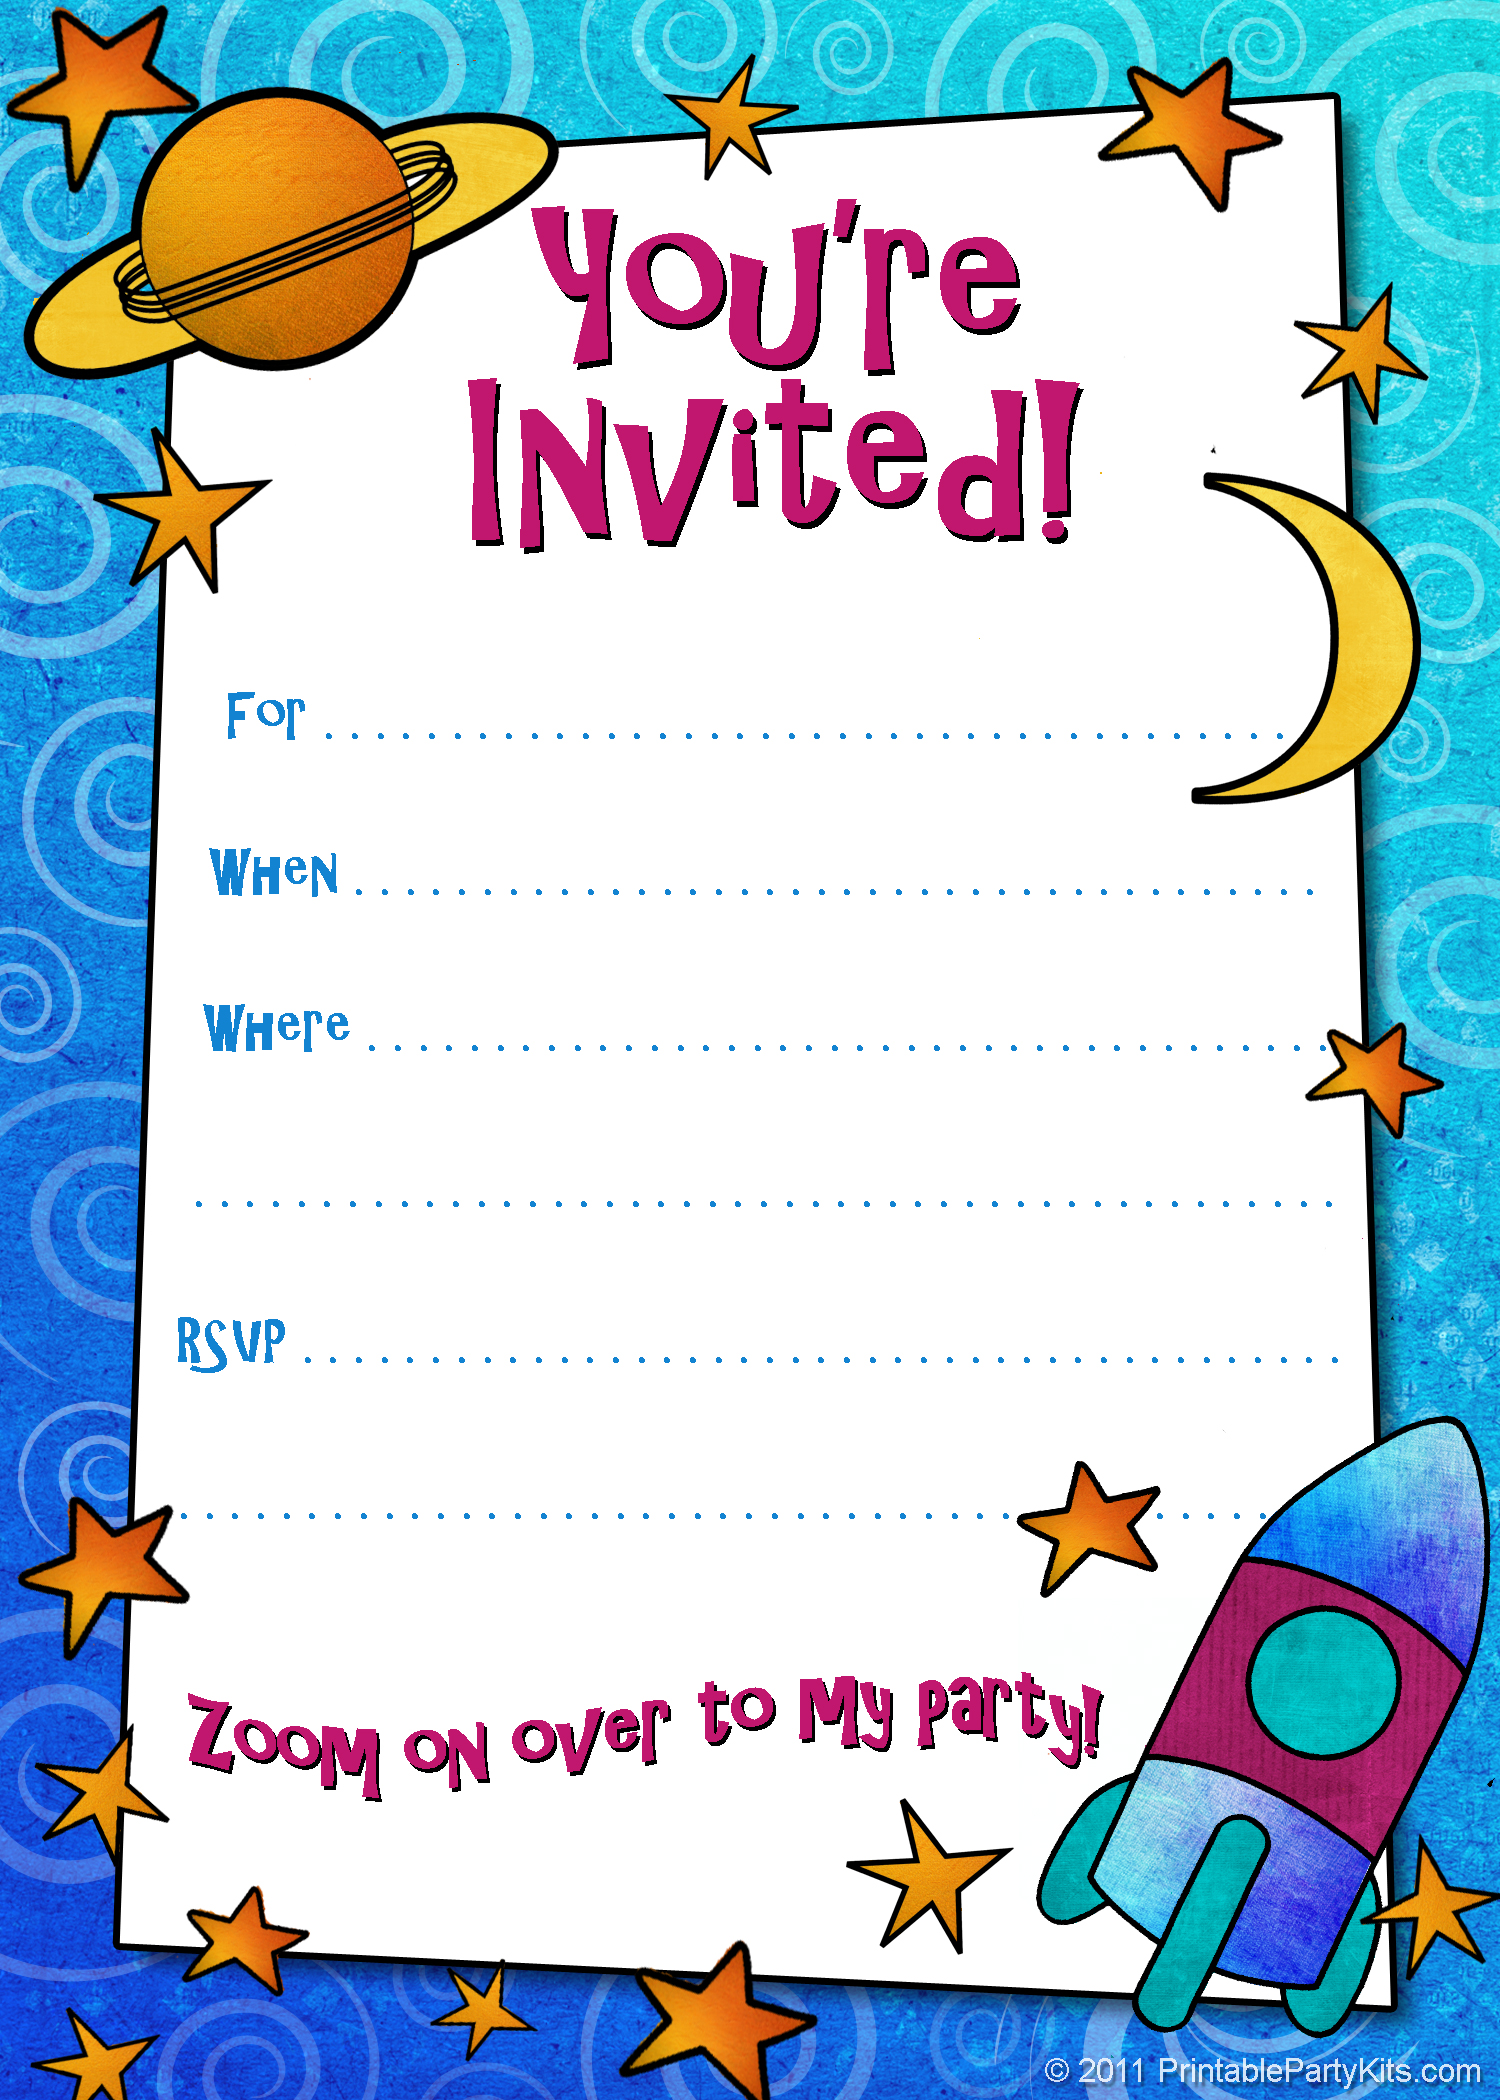 print your own birthday invitations ; Boys-party-invitations-is-one-of-the-best-idea-for-you-to-make-your-own-party-invitation-design-1